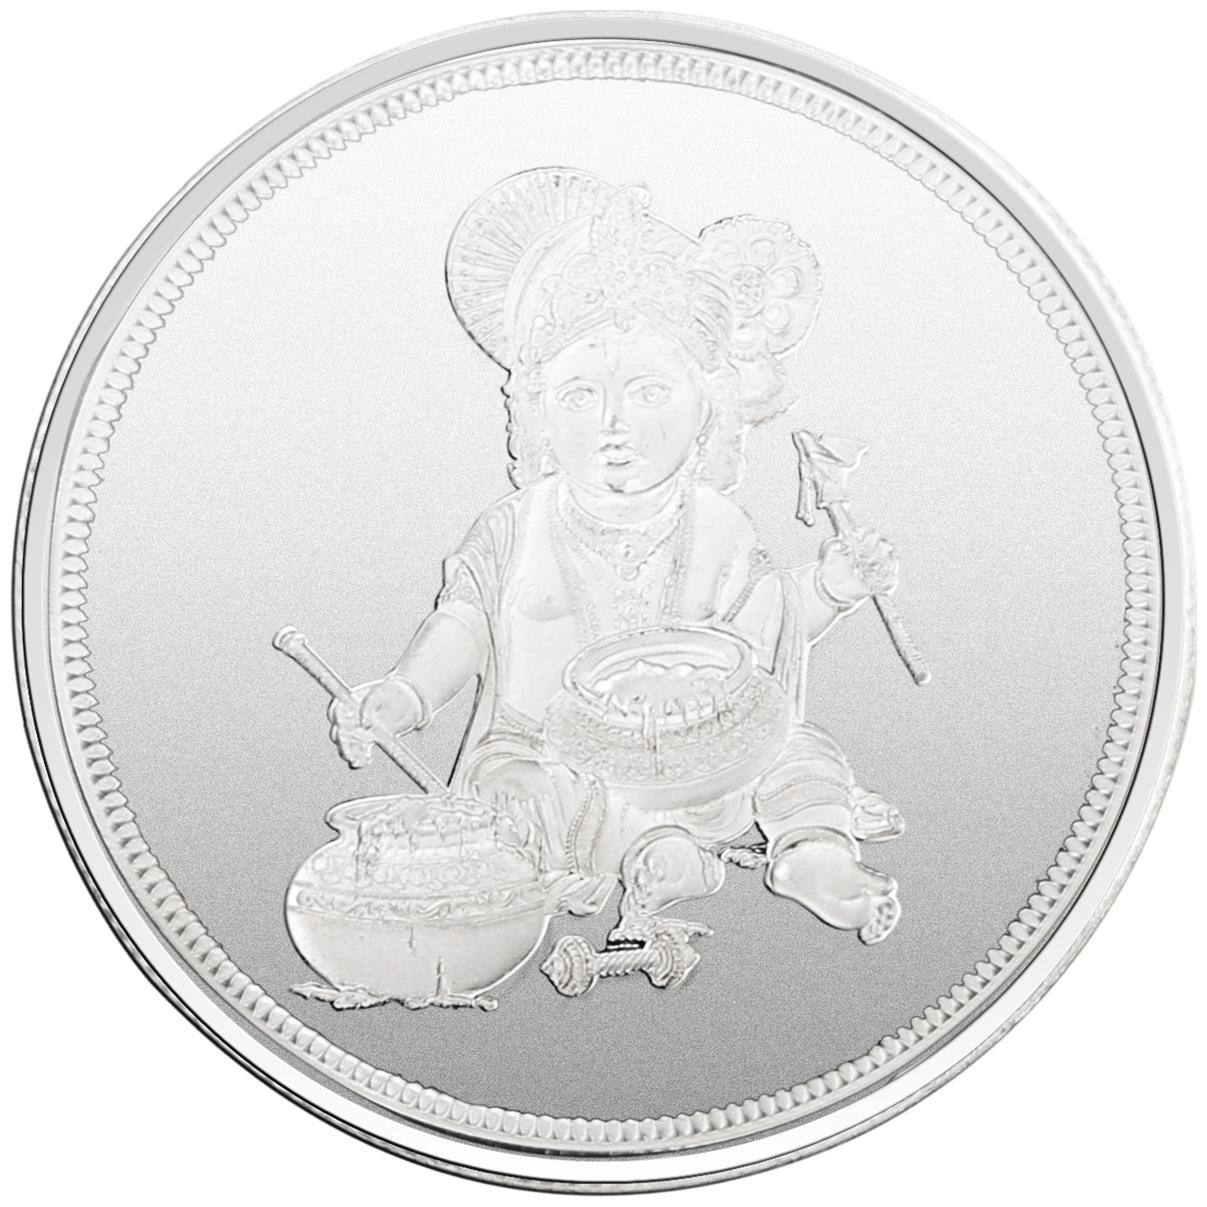 Pure Silver Coin 999 BIS Hallmarked Indian Sai Baba 10 gms